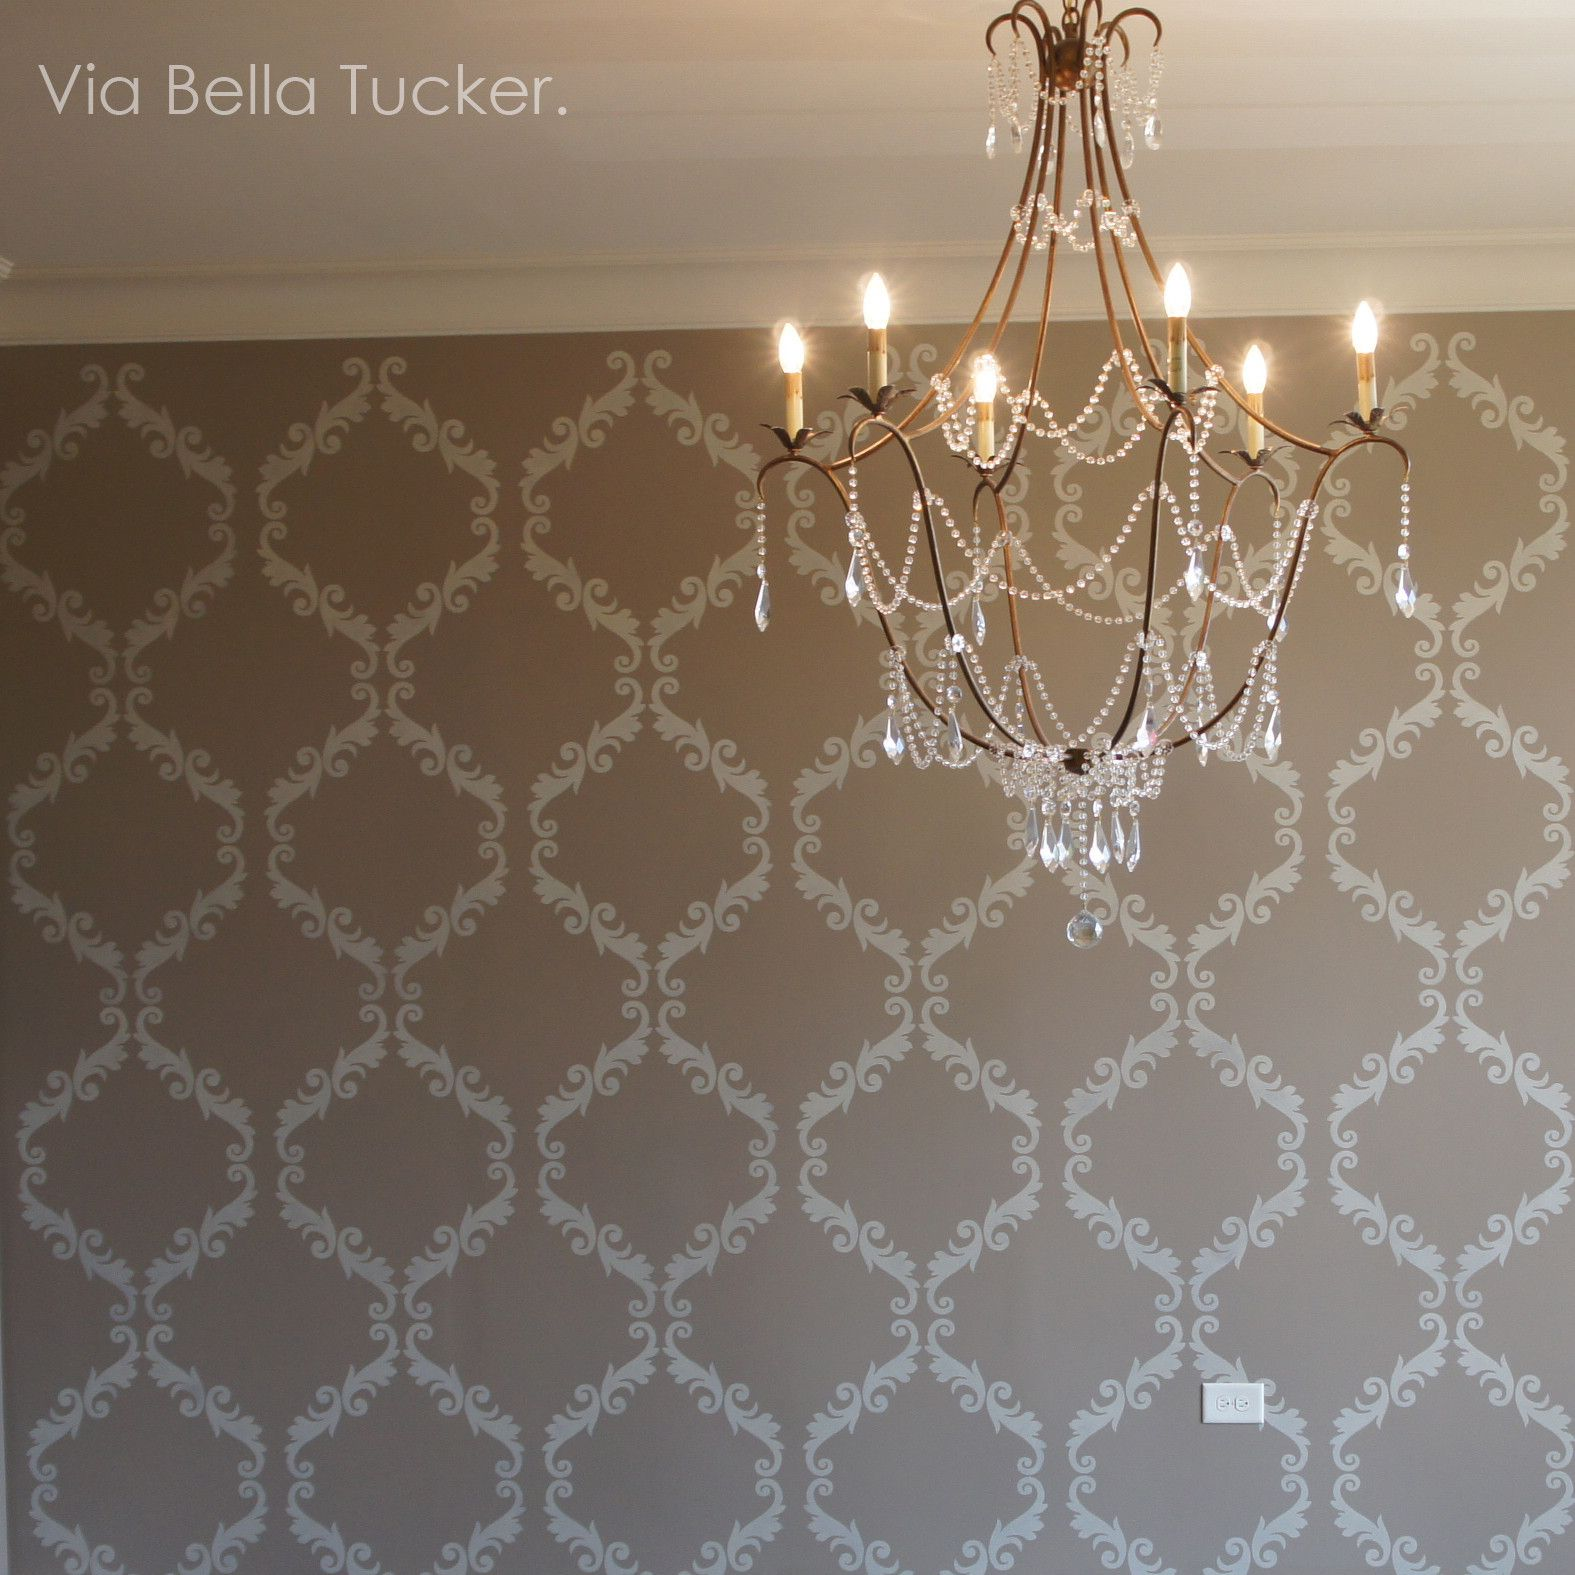 Royal design wallpaper the wallpaper acanthus trellis wall stencil trendy wallpaper wall stenciling amipublicfo Image collections